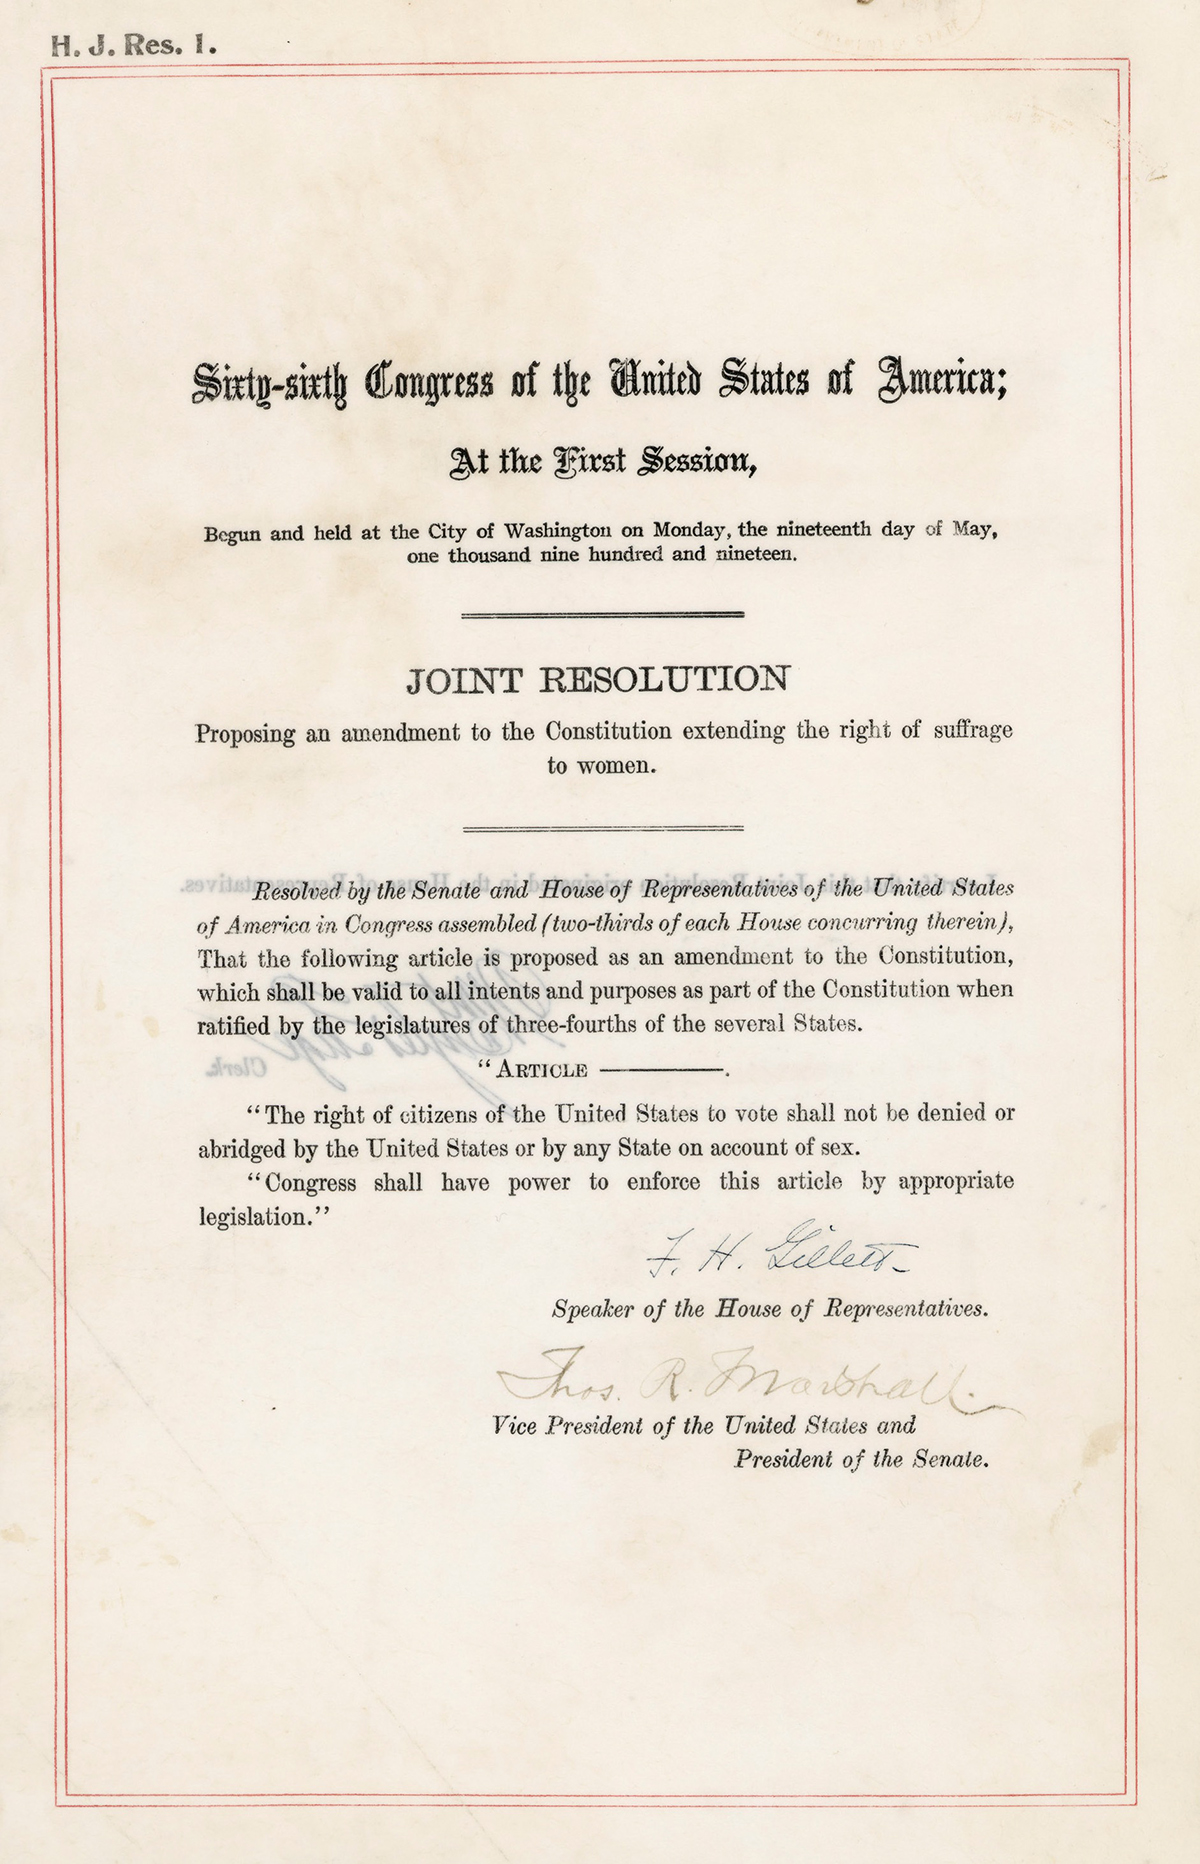 House Joint Resolution 1, presenting what would become the 19th Amendment, passed June 4, 1919; ratified by the states Aug. 18, 1920; became law Aug. 26, 1920.